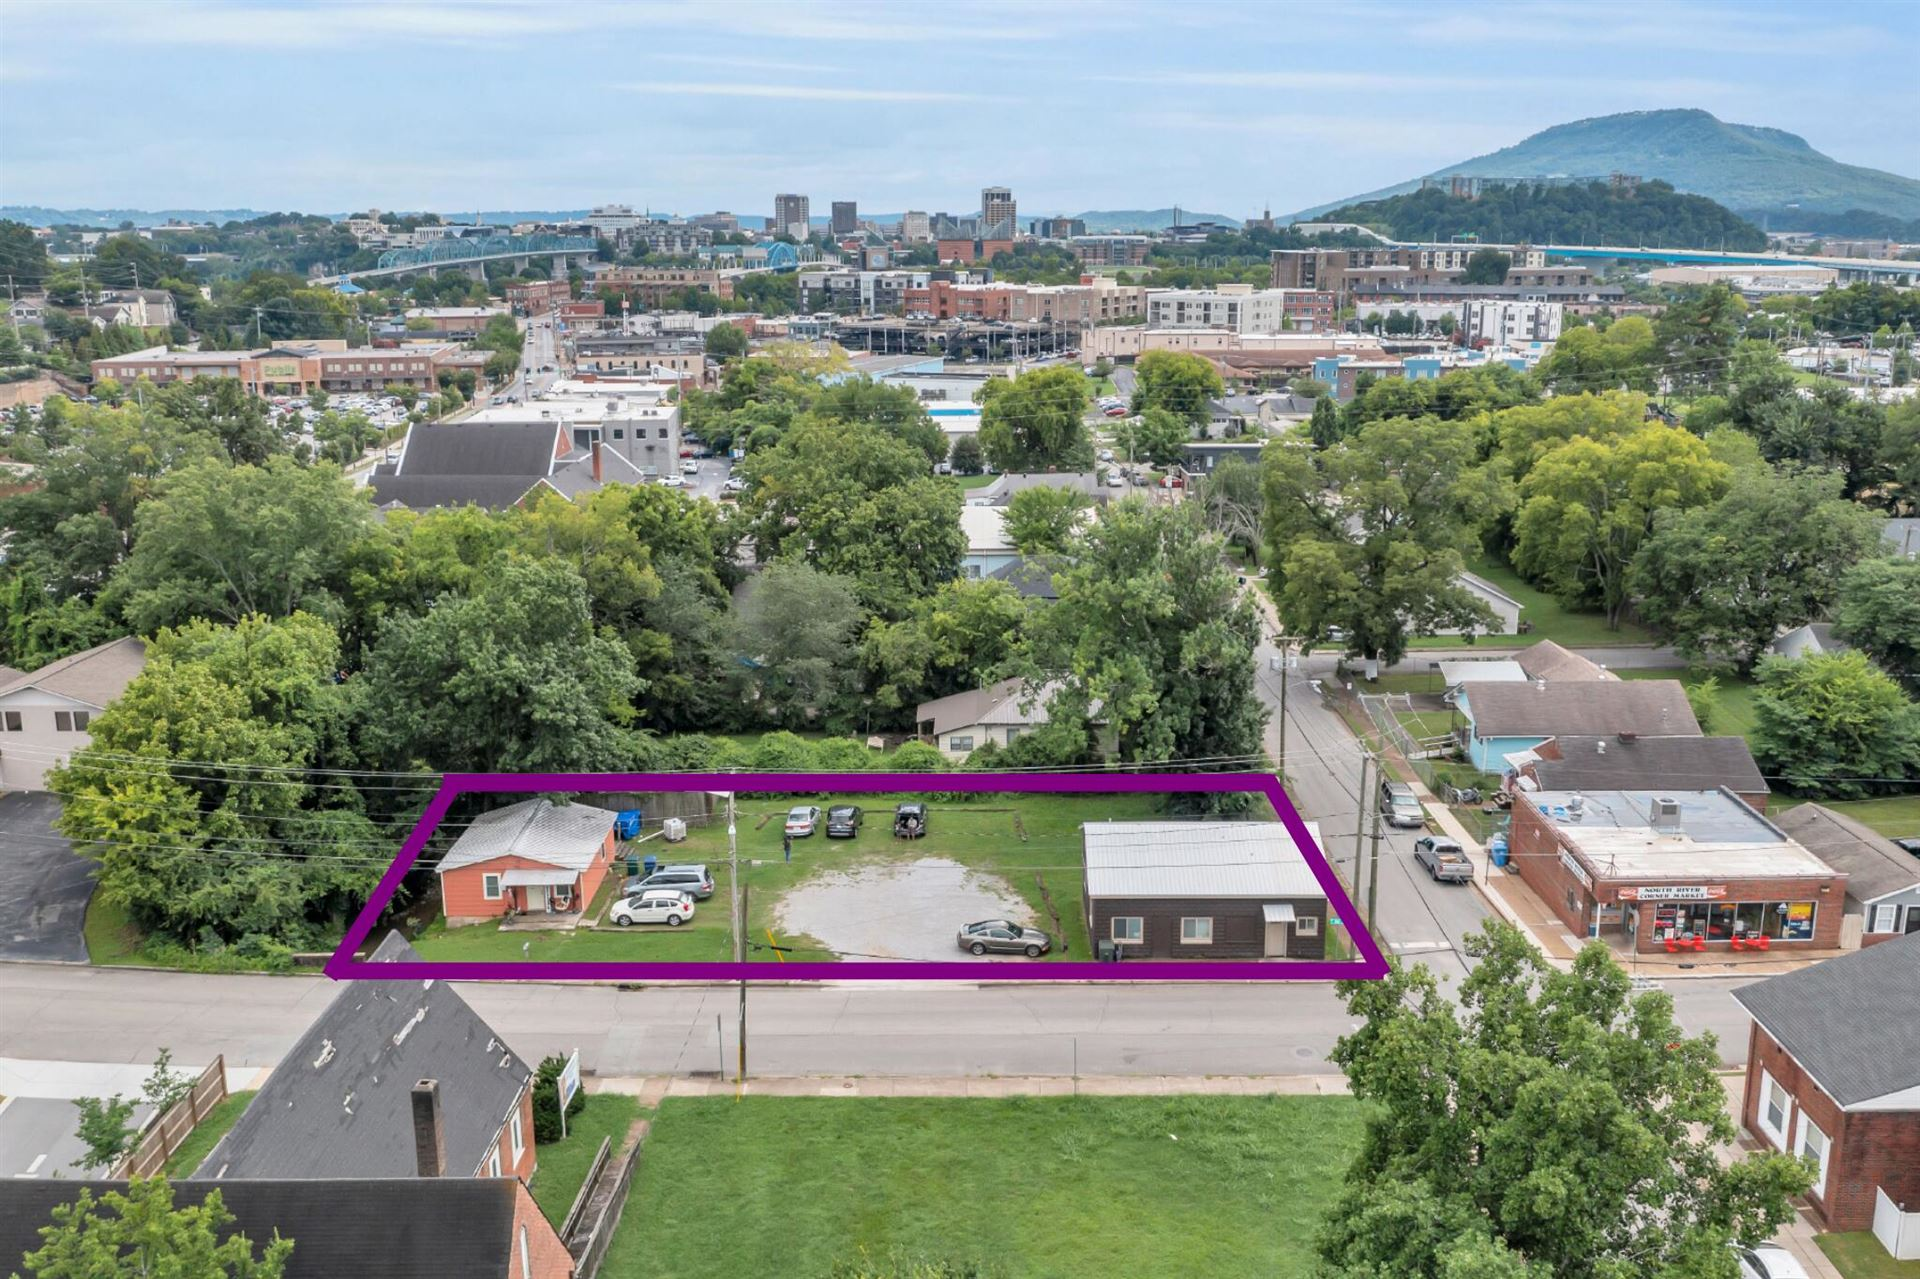 22 W Bell Ave, Chattanooga, TN 37405 - MLS#: 1340114